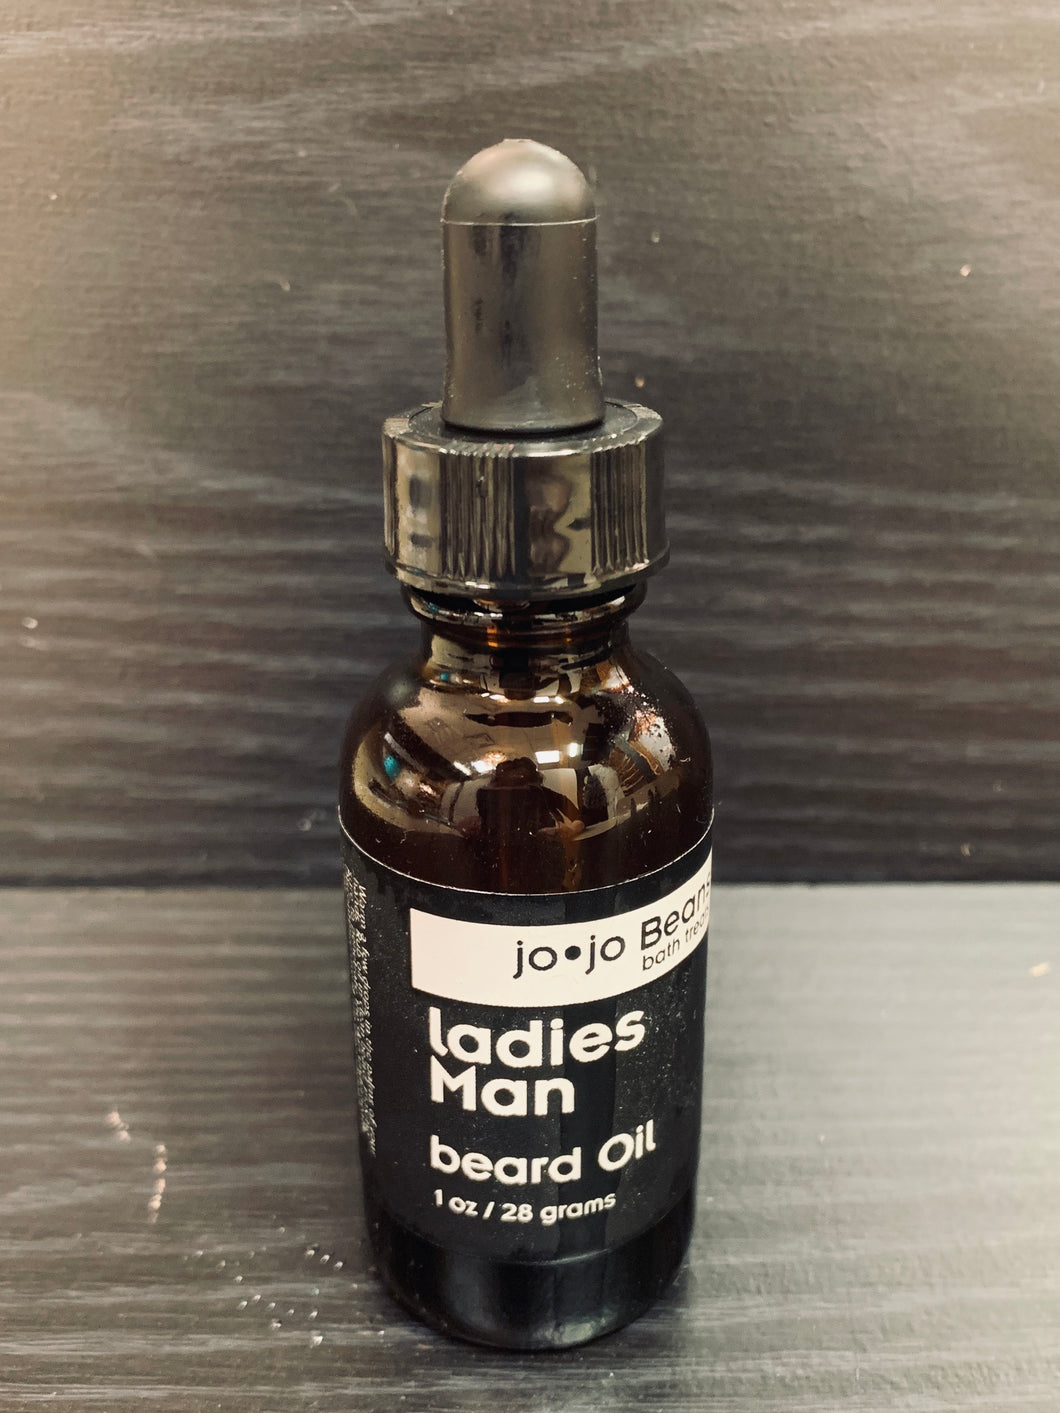 Ladies Man Beard Oil